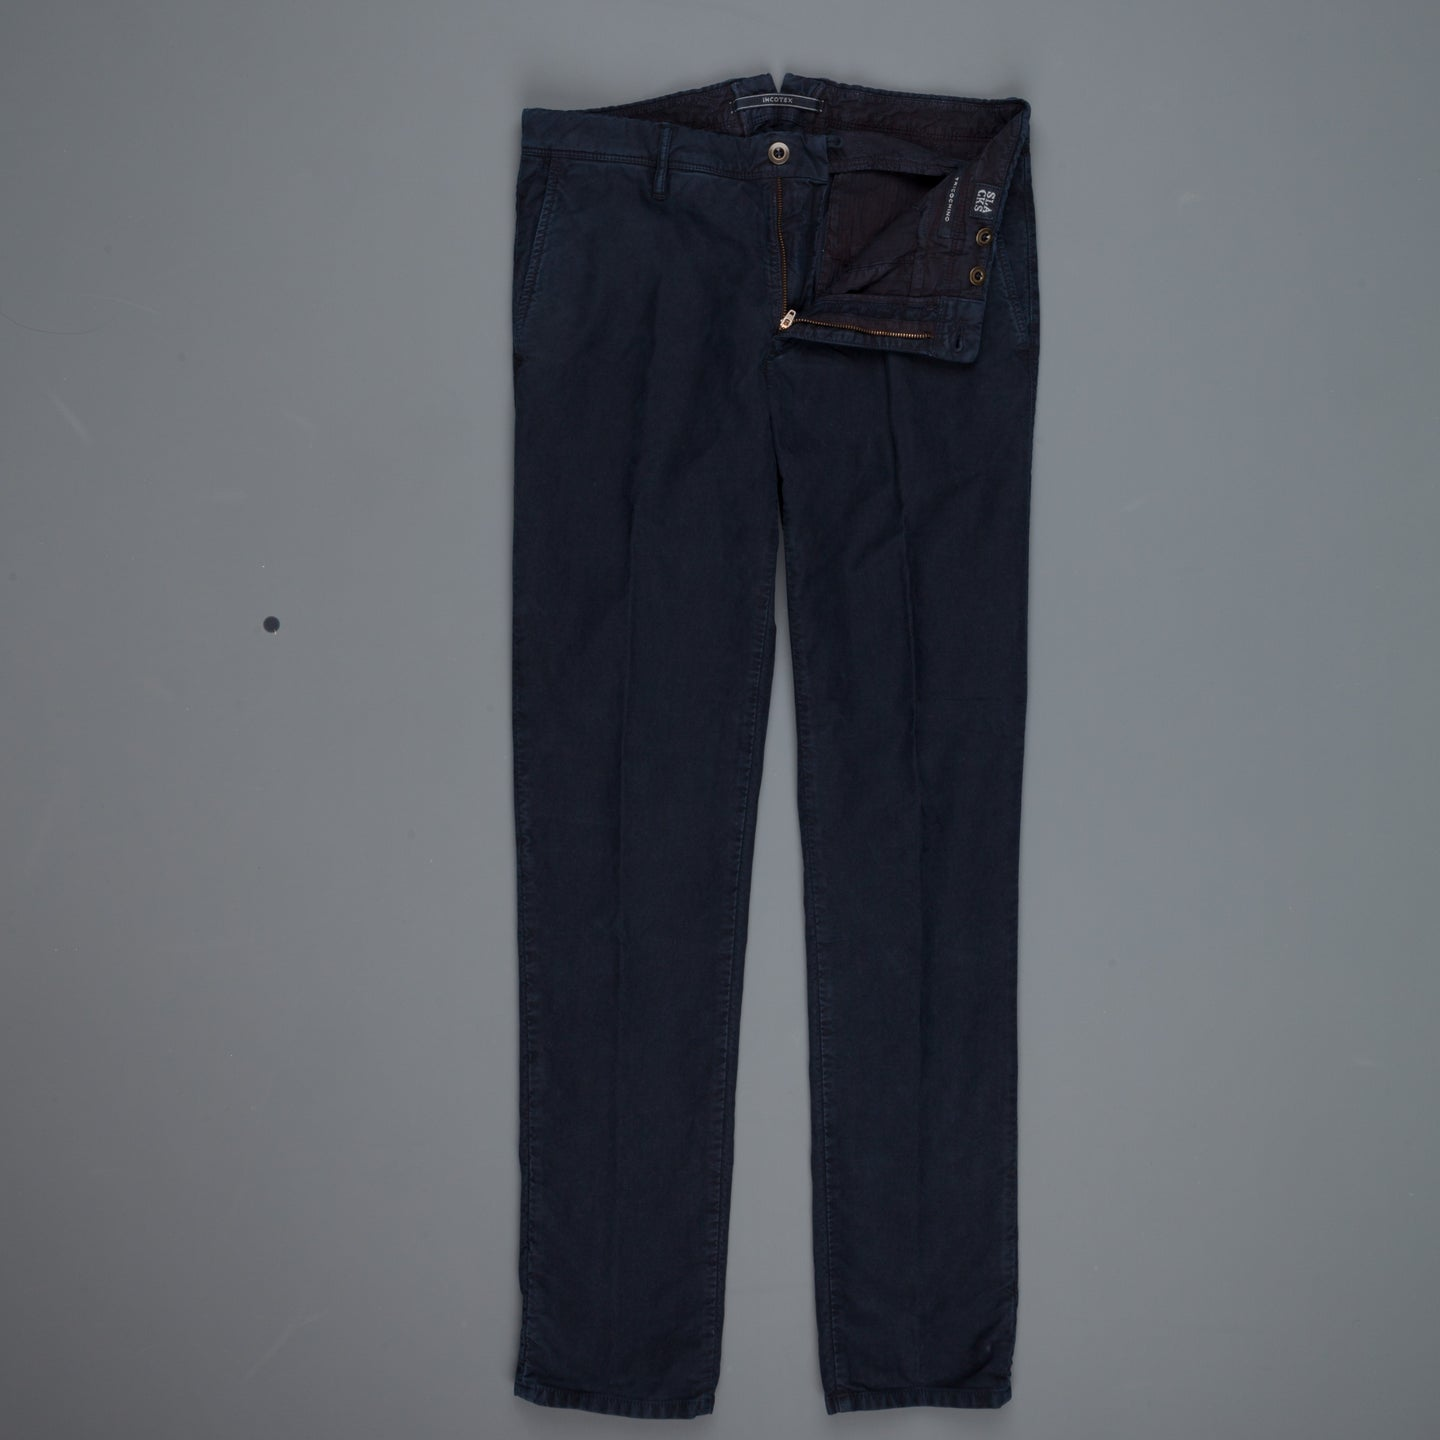 Incotex Slacks model 1ST603 Slim fit pants Blu